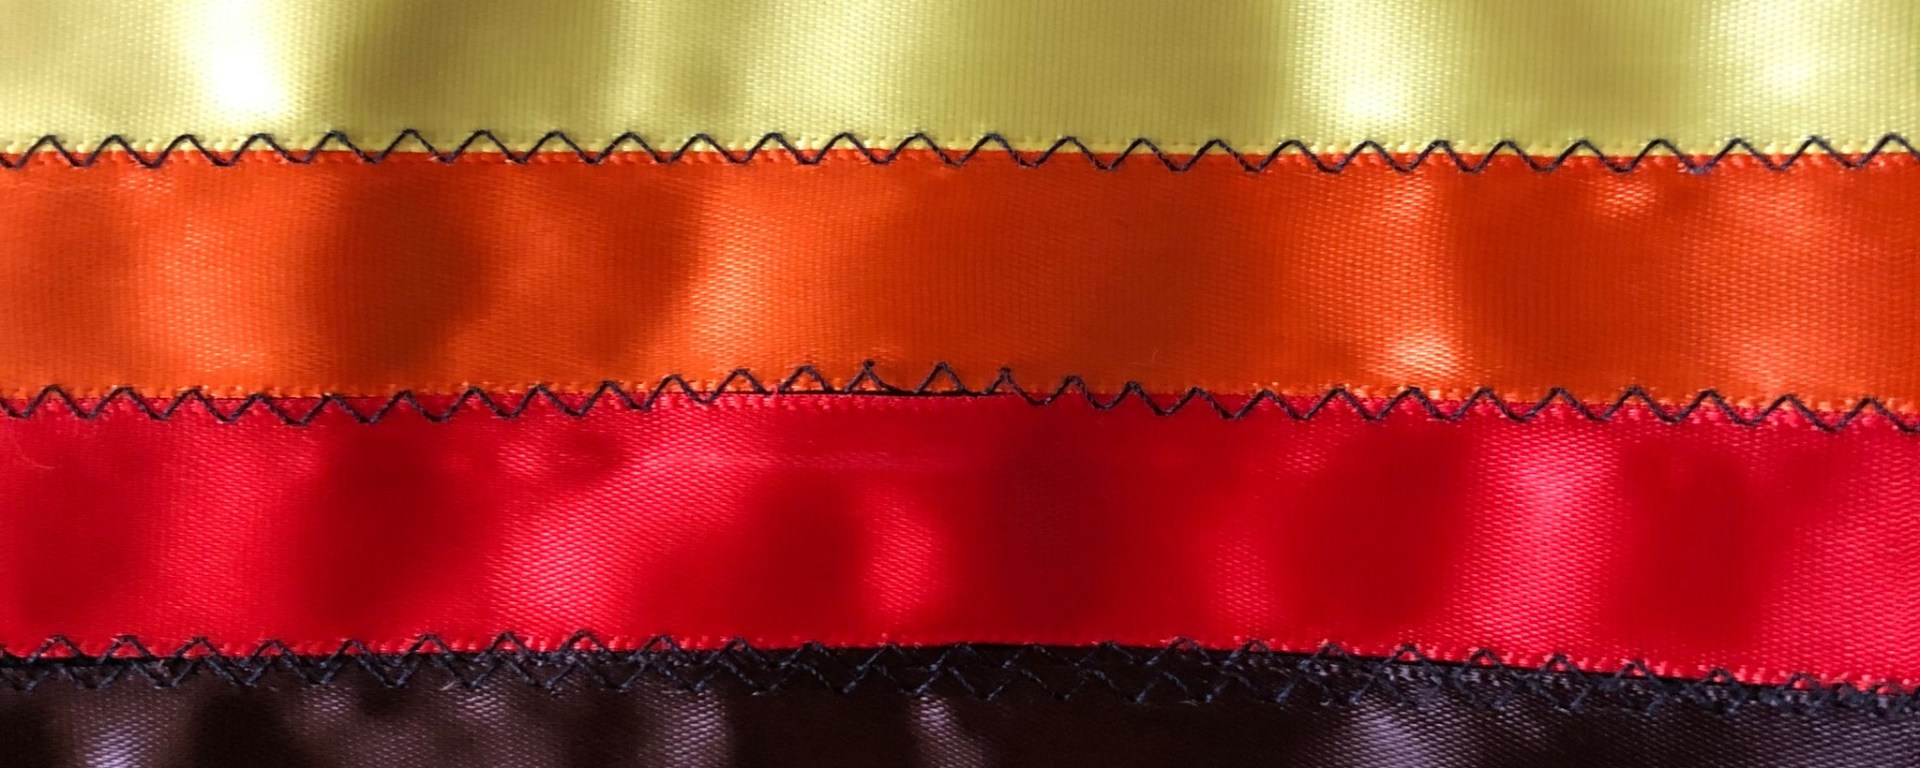 A photo of black, yellow, orange, and red ribbons sewn together